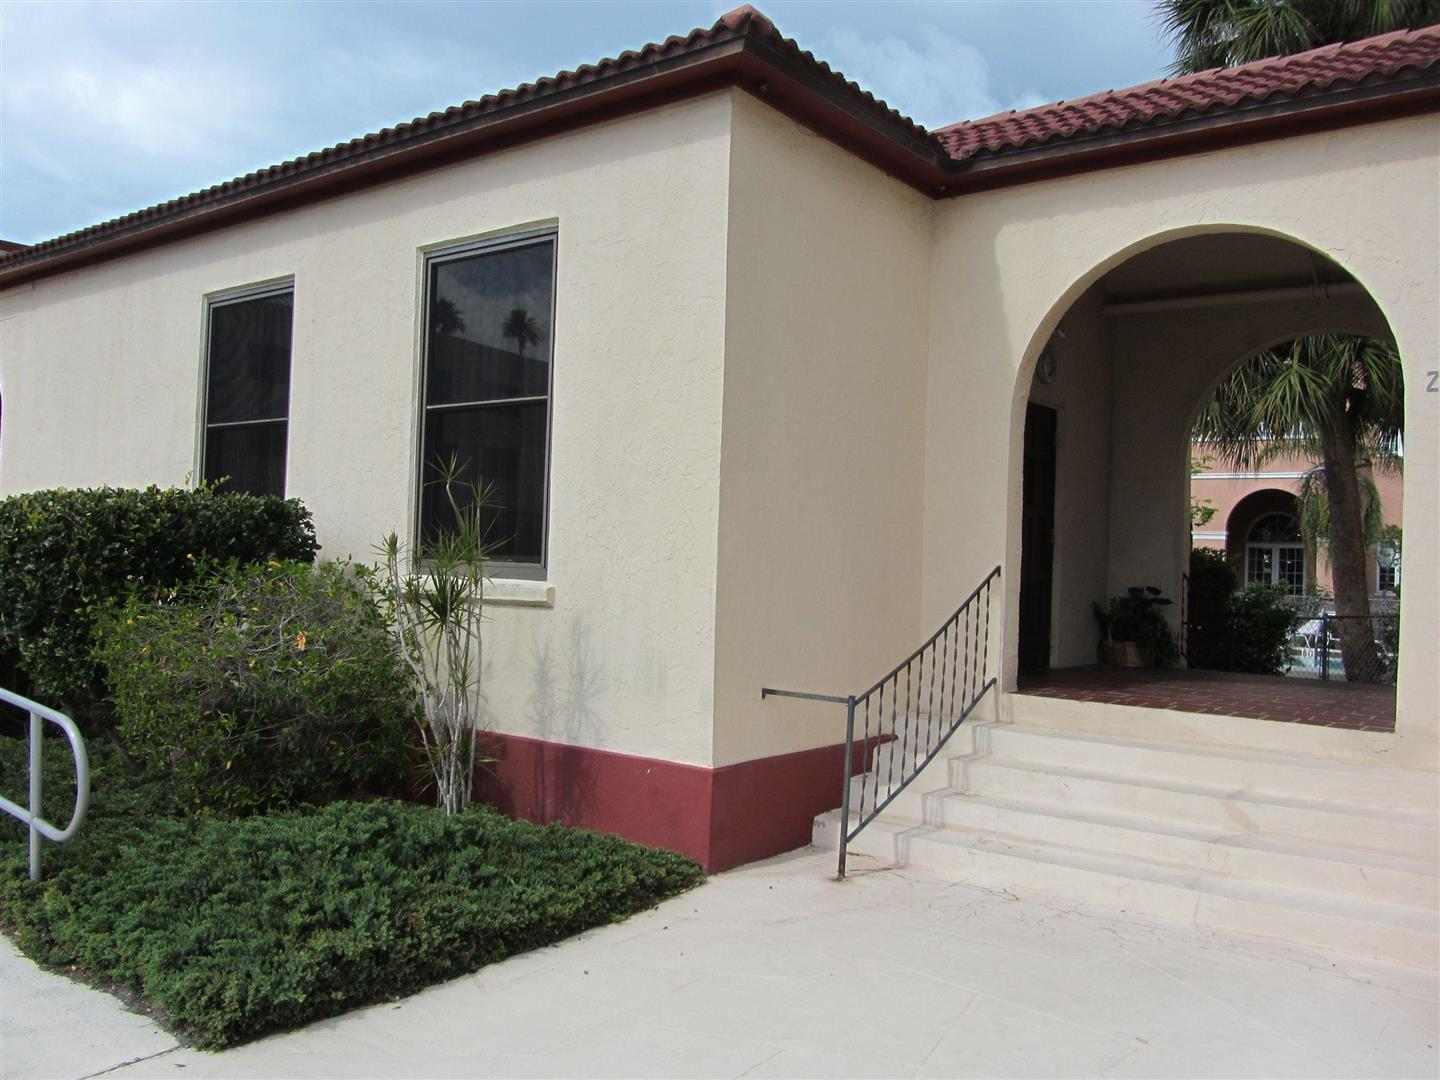 262TampaAveClubHouseExterior.jpg